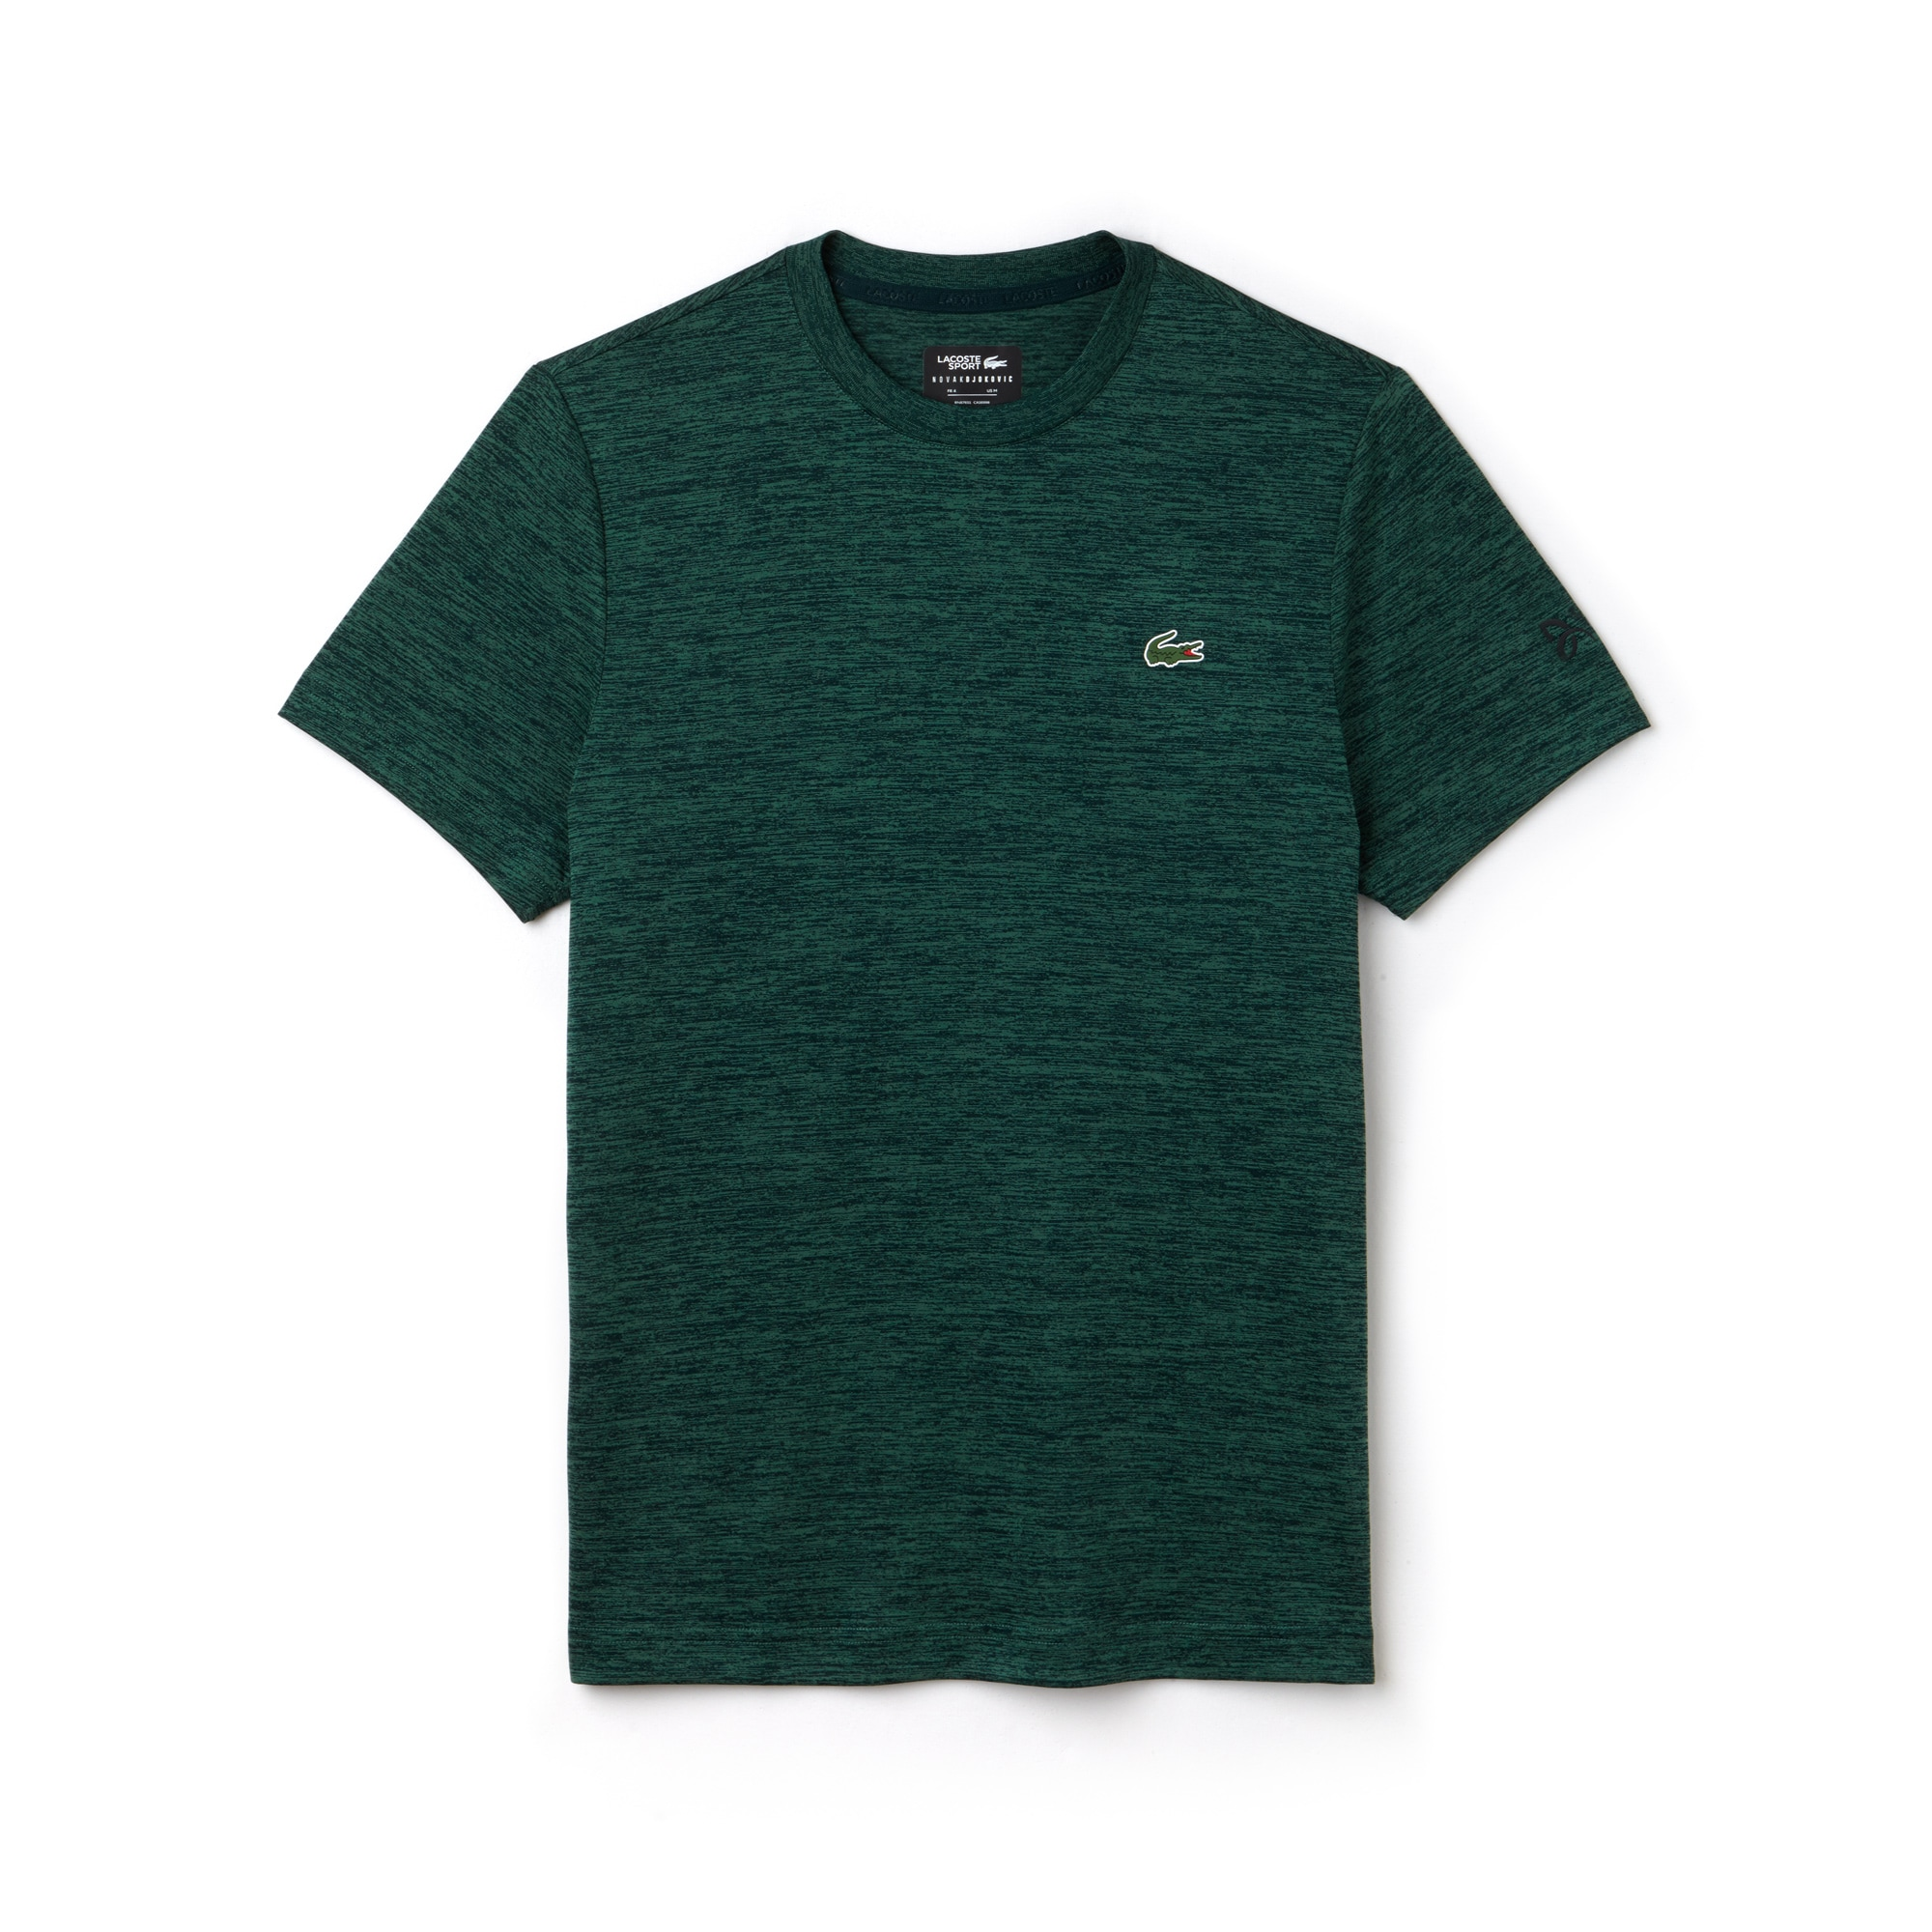 Men's Lacoste SPORT Tennis Crew Neck Tech Jersey & Mesh T-shirt